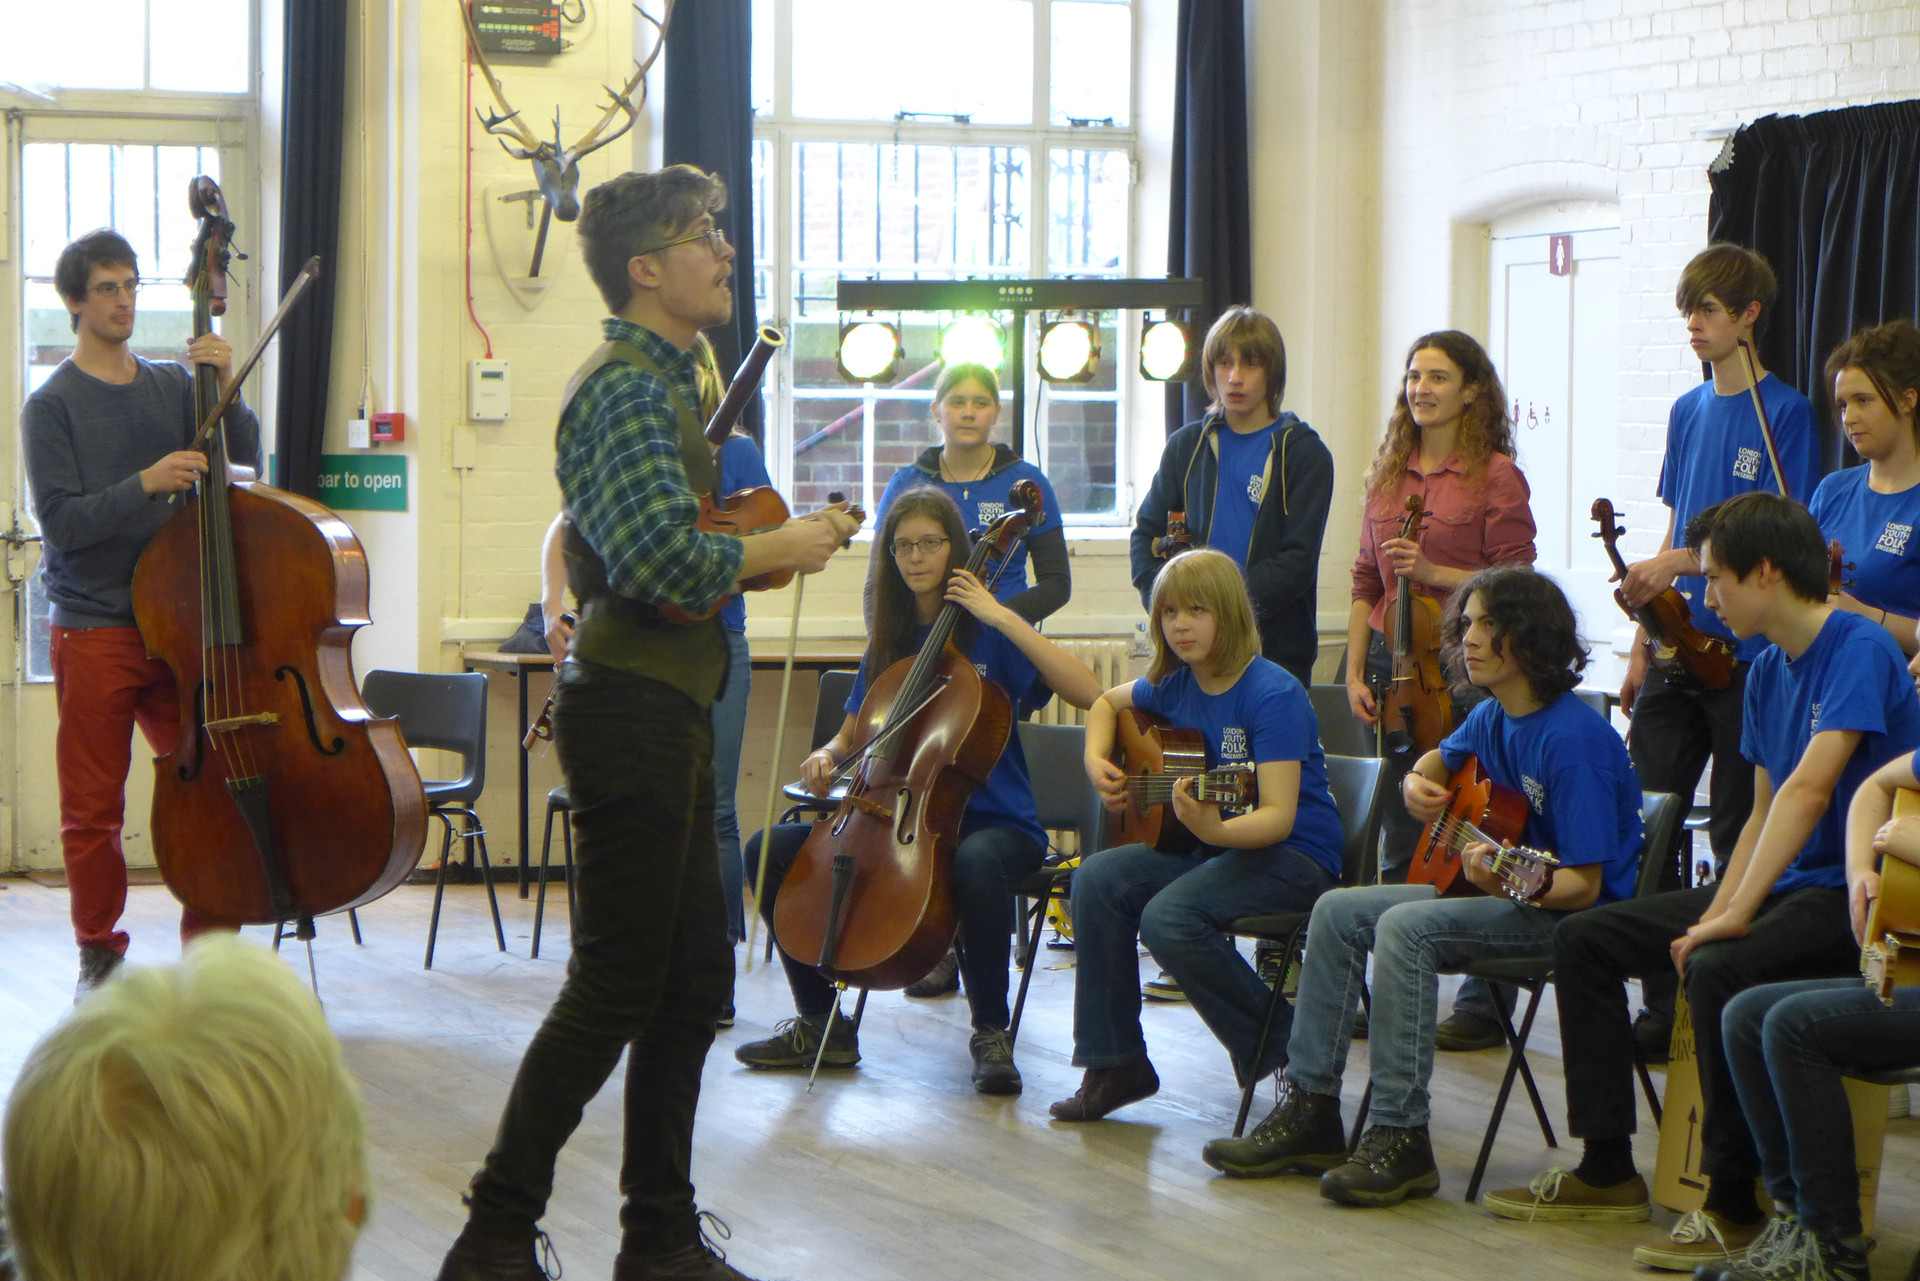 Ben teaching the London Youth Folk Ensemble